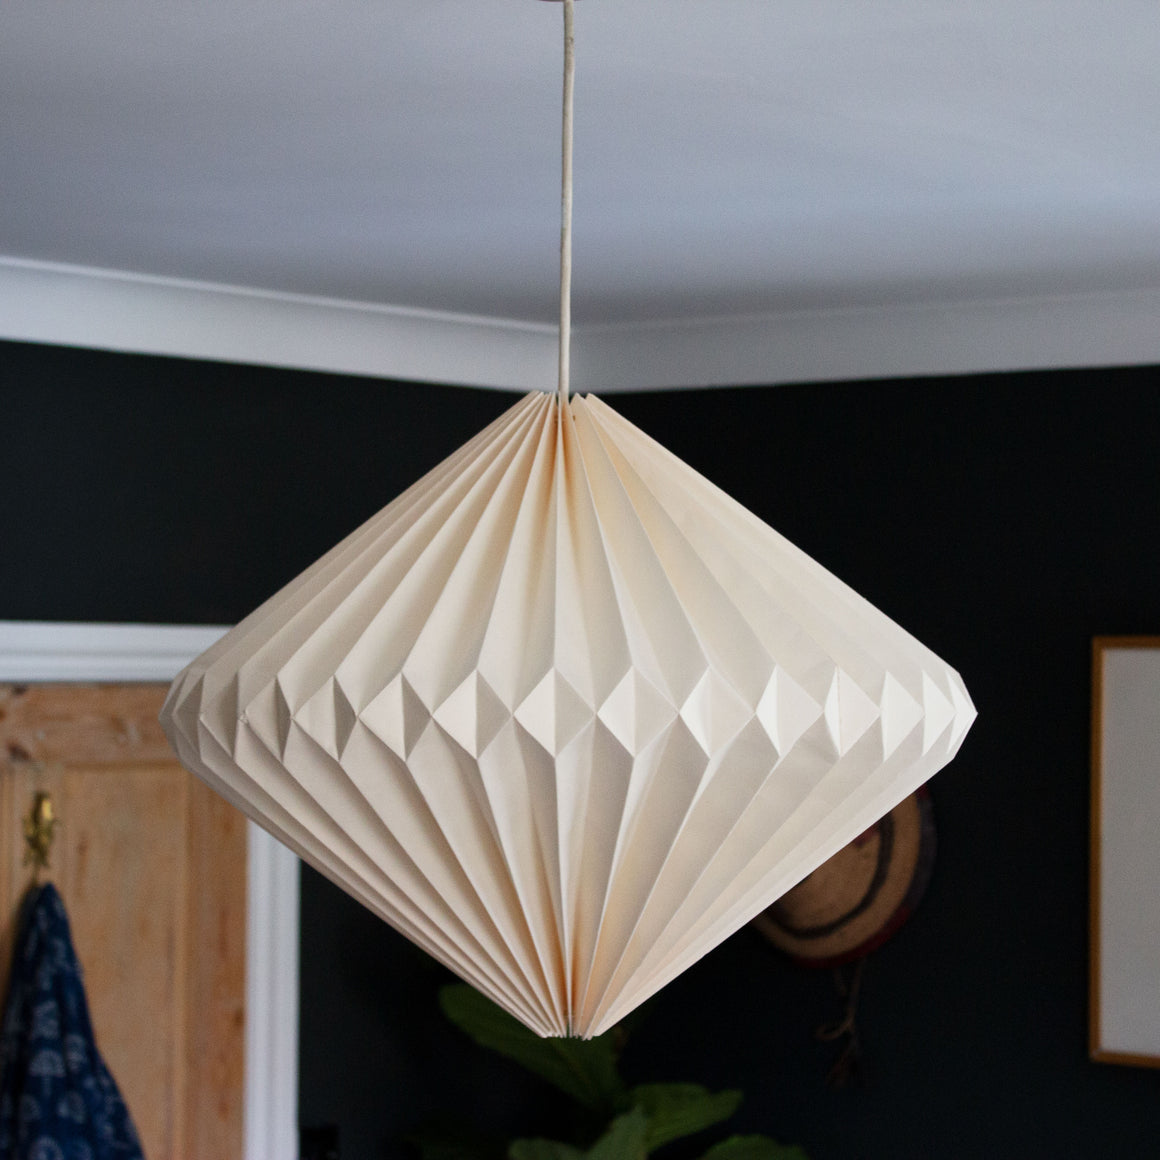 Indian Recycled Paper Diamond Light Shade 'Natural Calico'